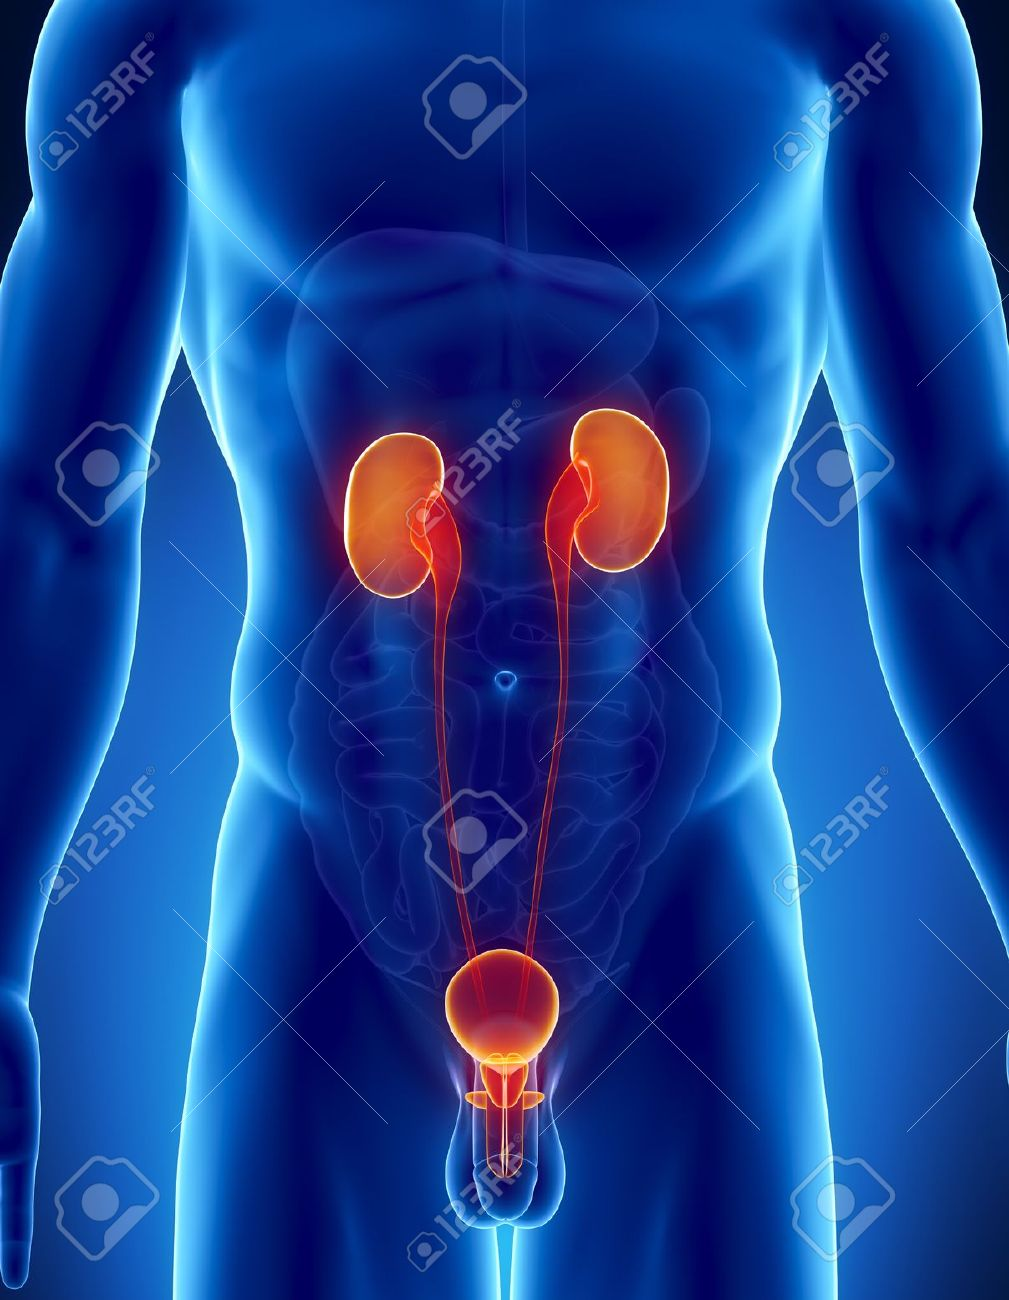 Male Anatomy Of Human Urinary Tract In X-ray View Stock Photo ...